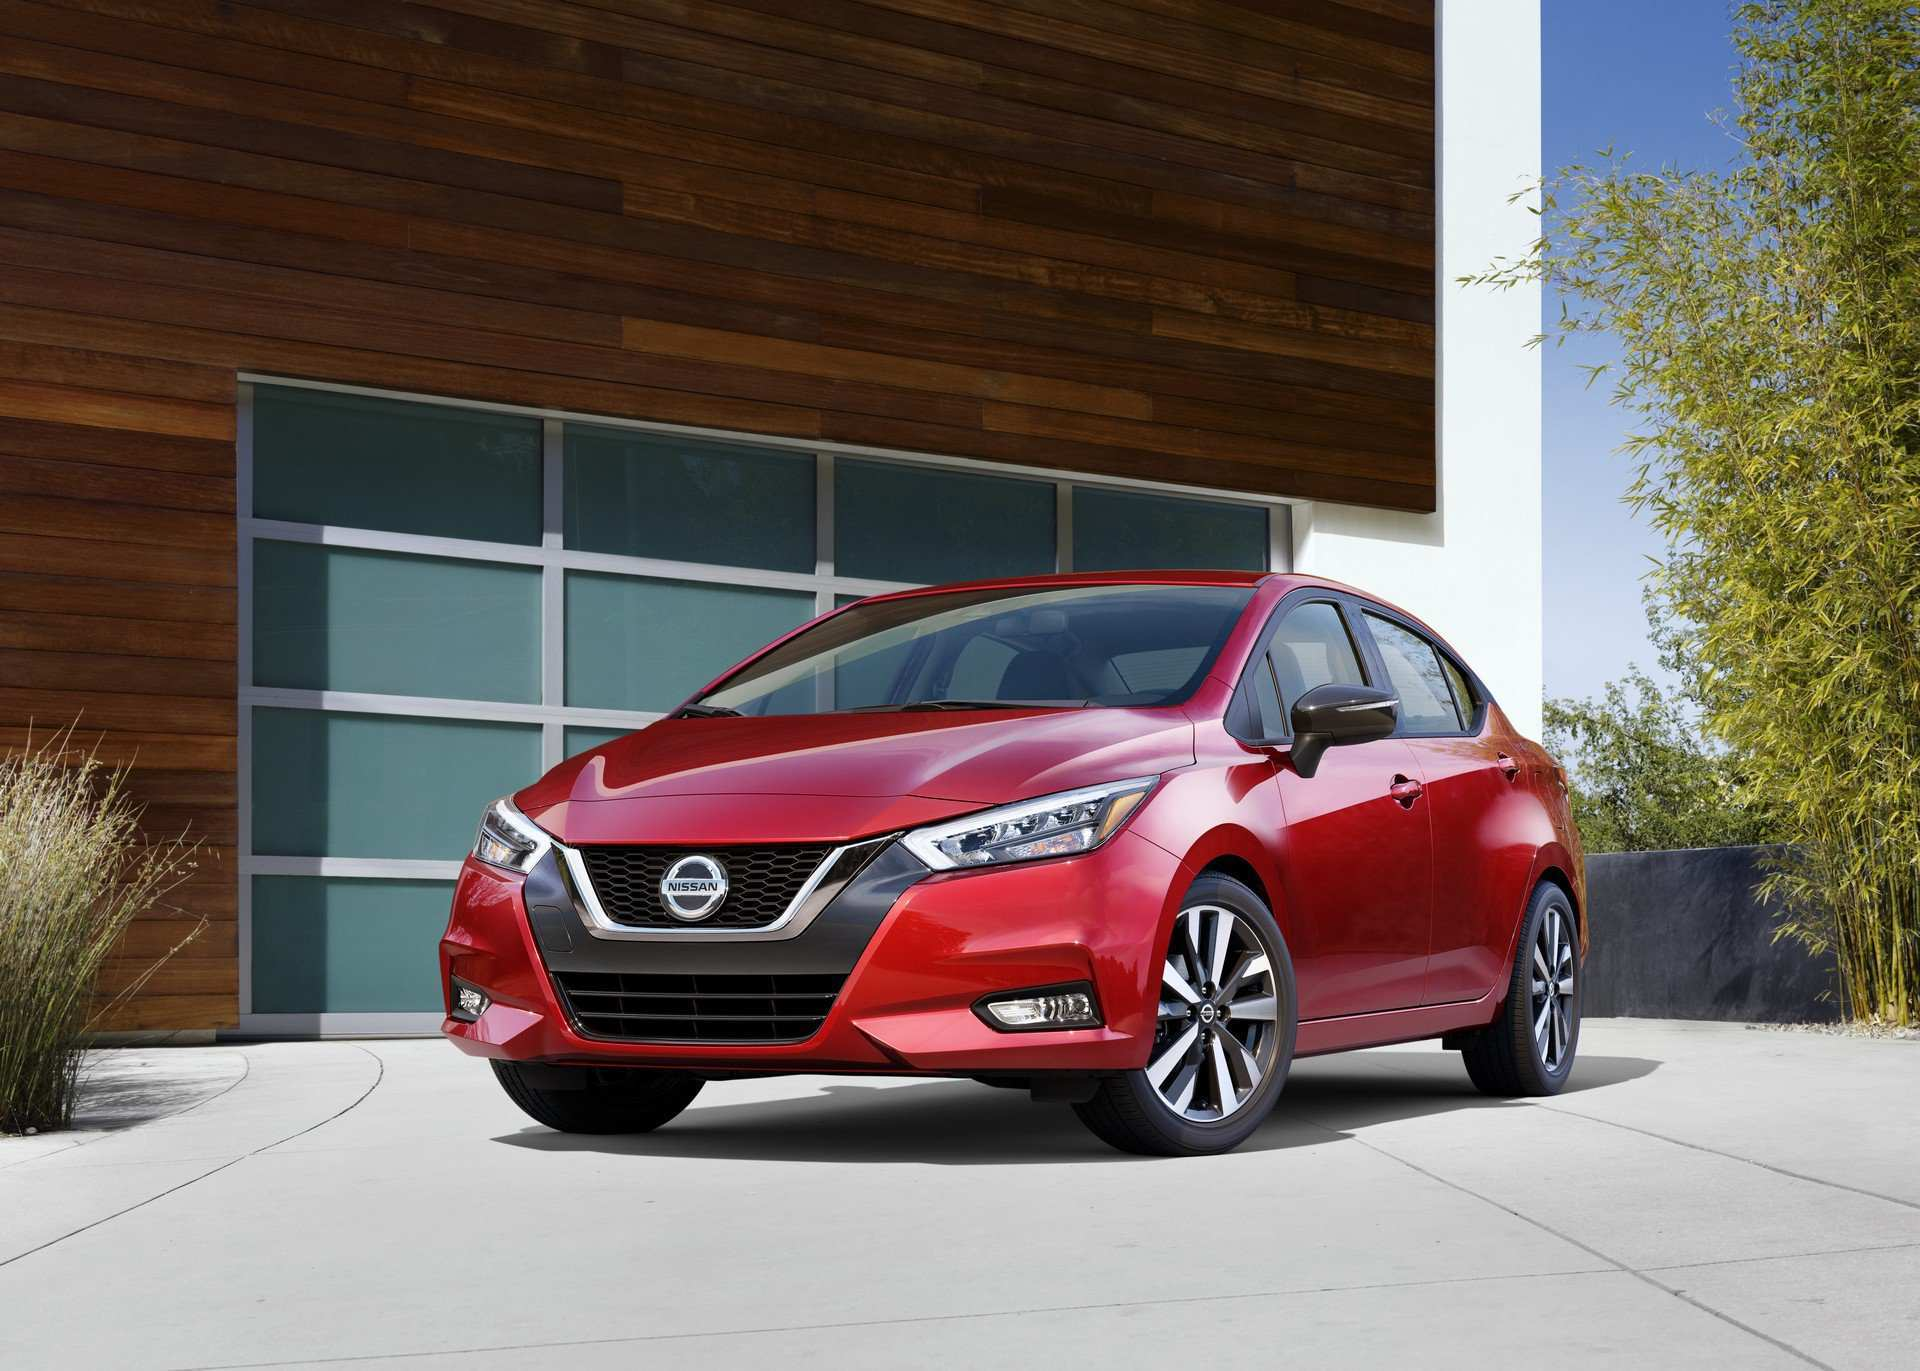 25 All New Nissan Versa 2020 Specs